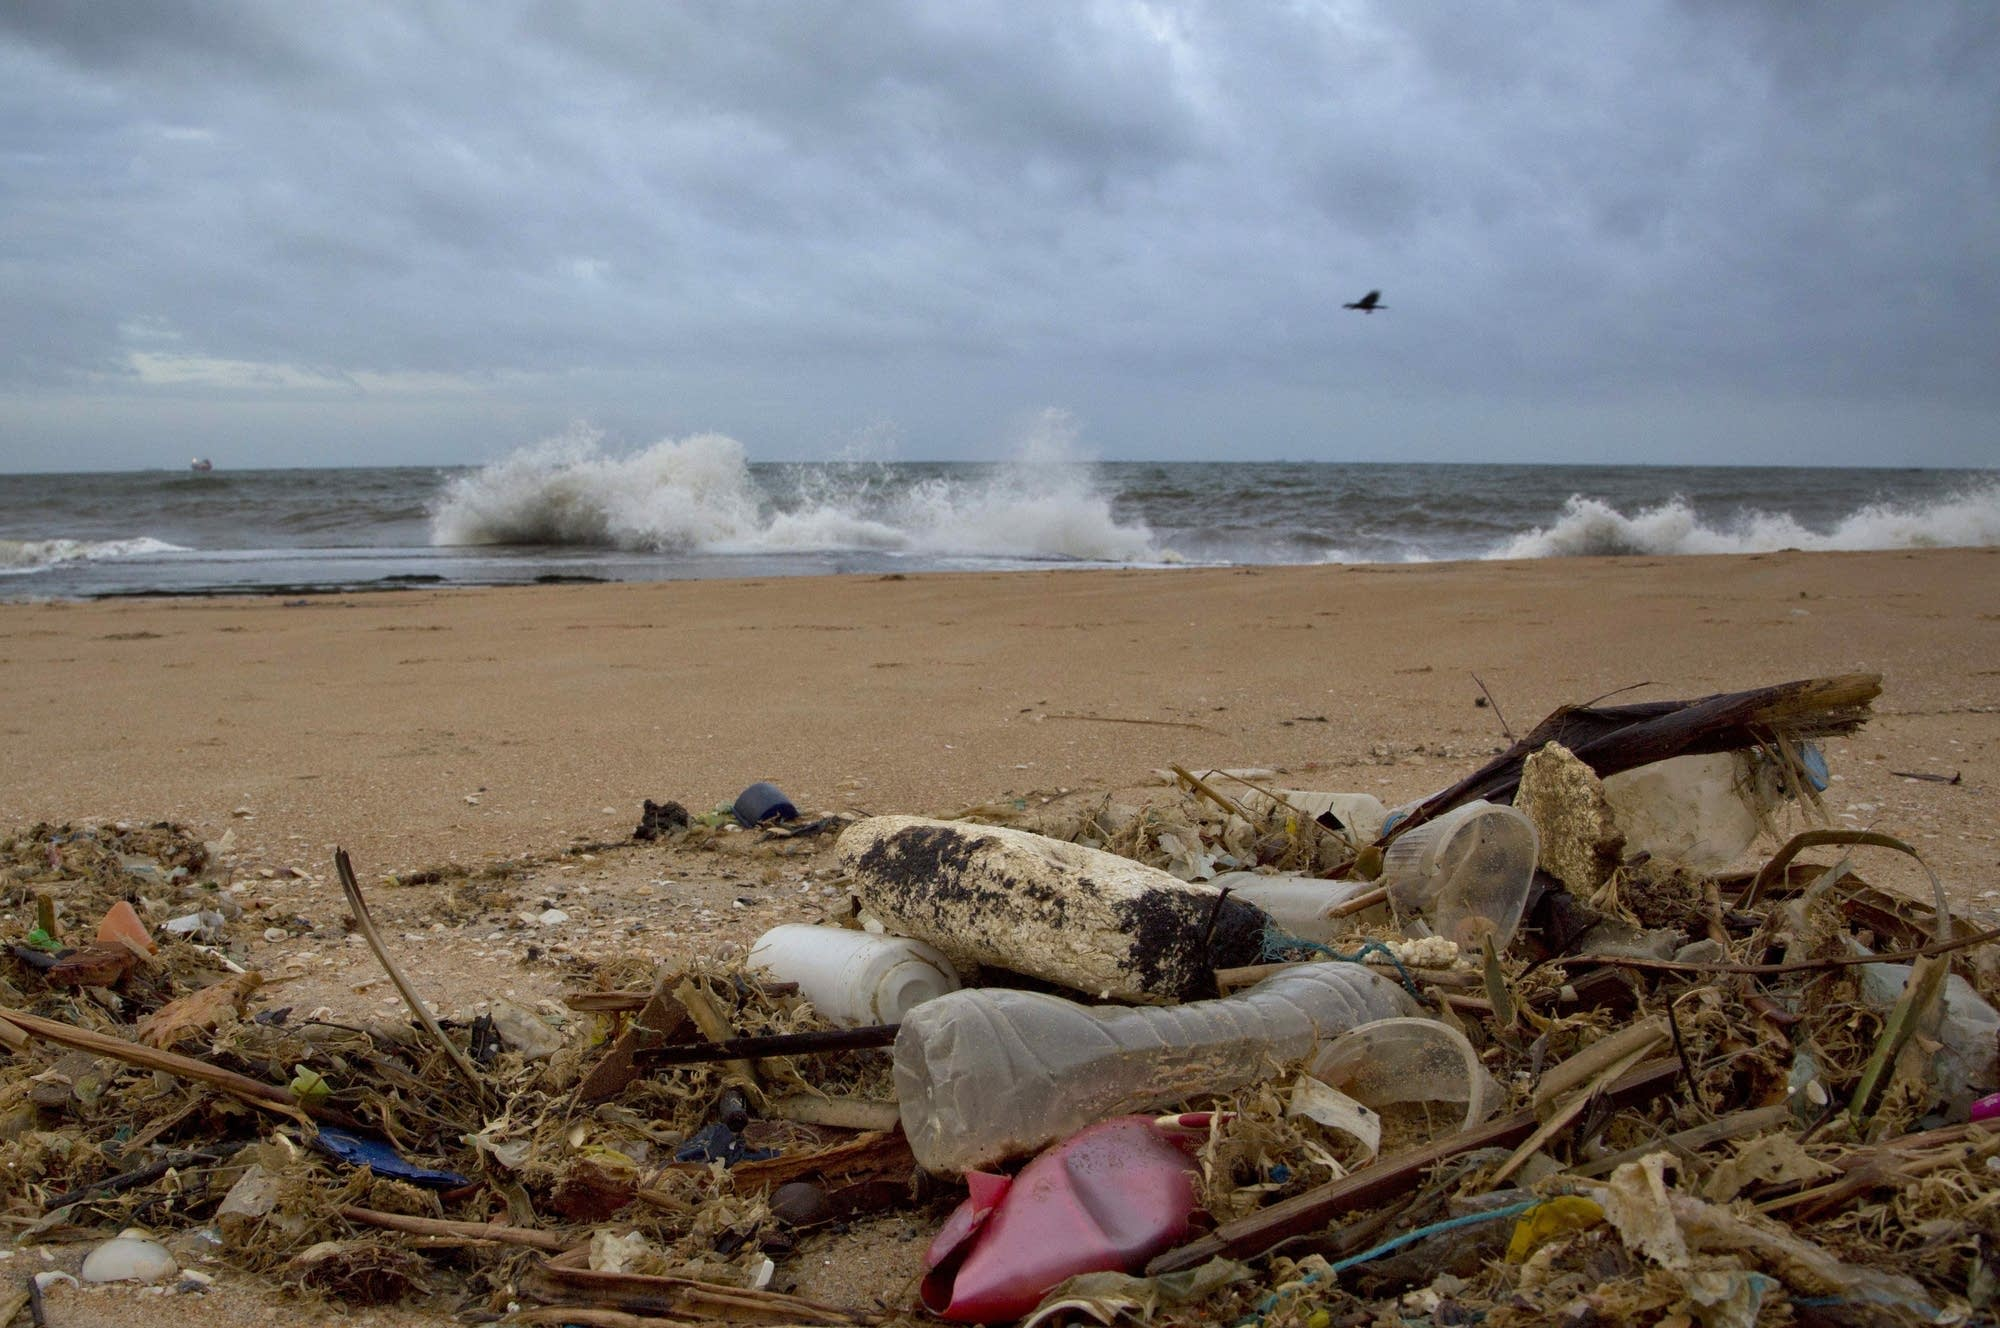 A plastic bottle lies among other debris washed ashore on the beach.